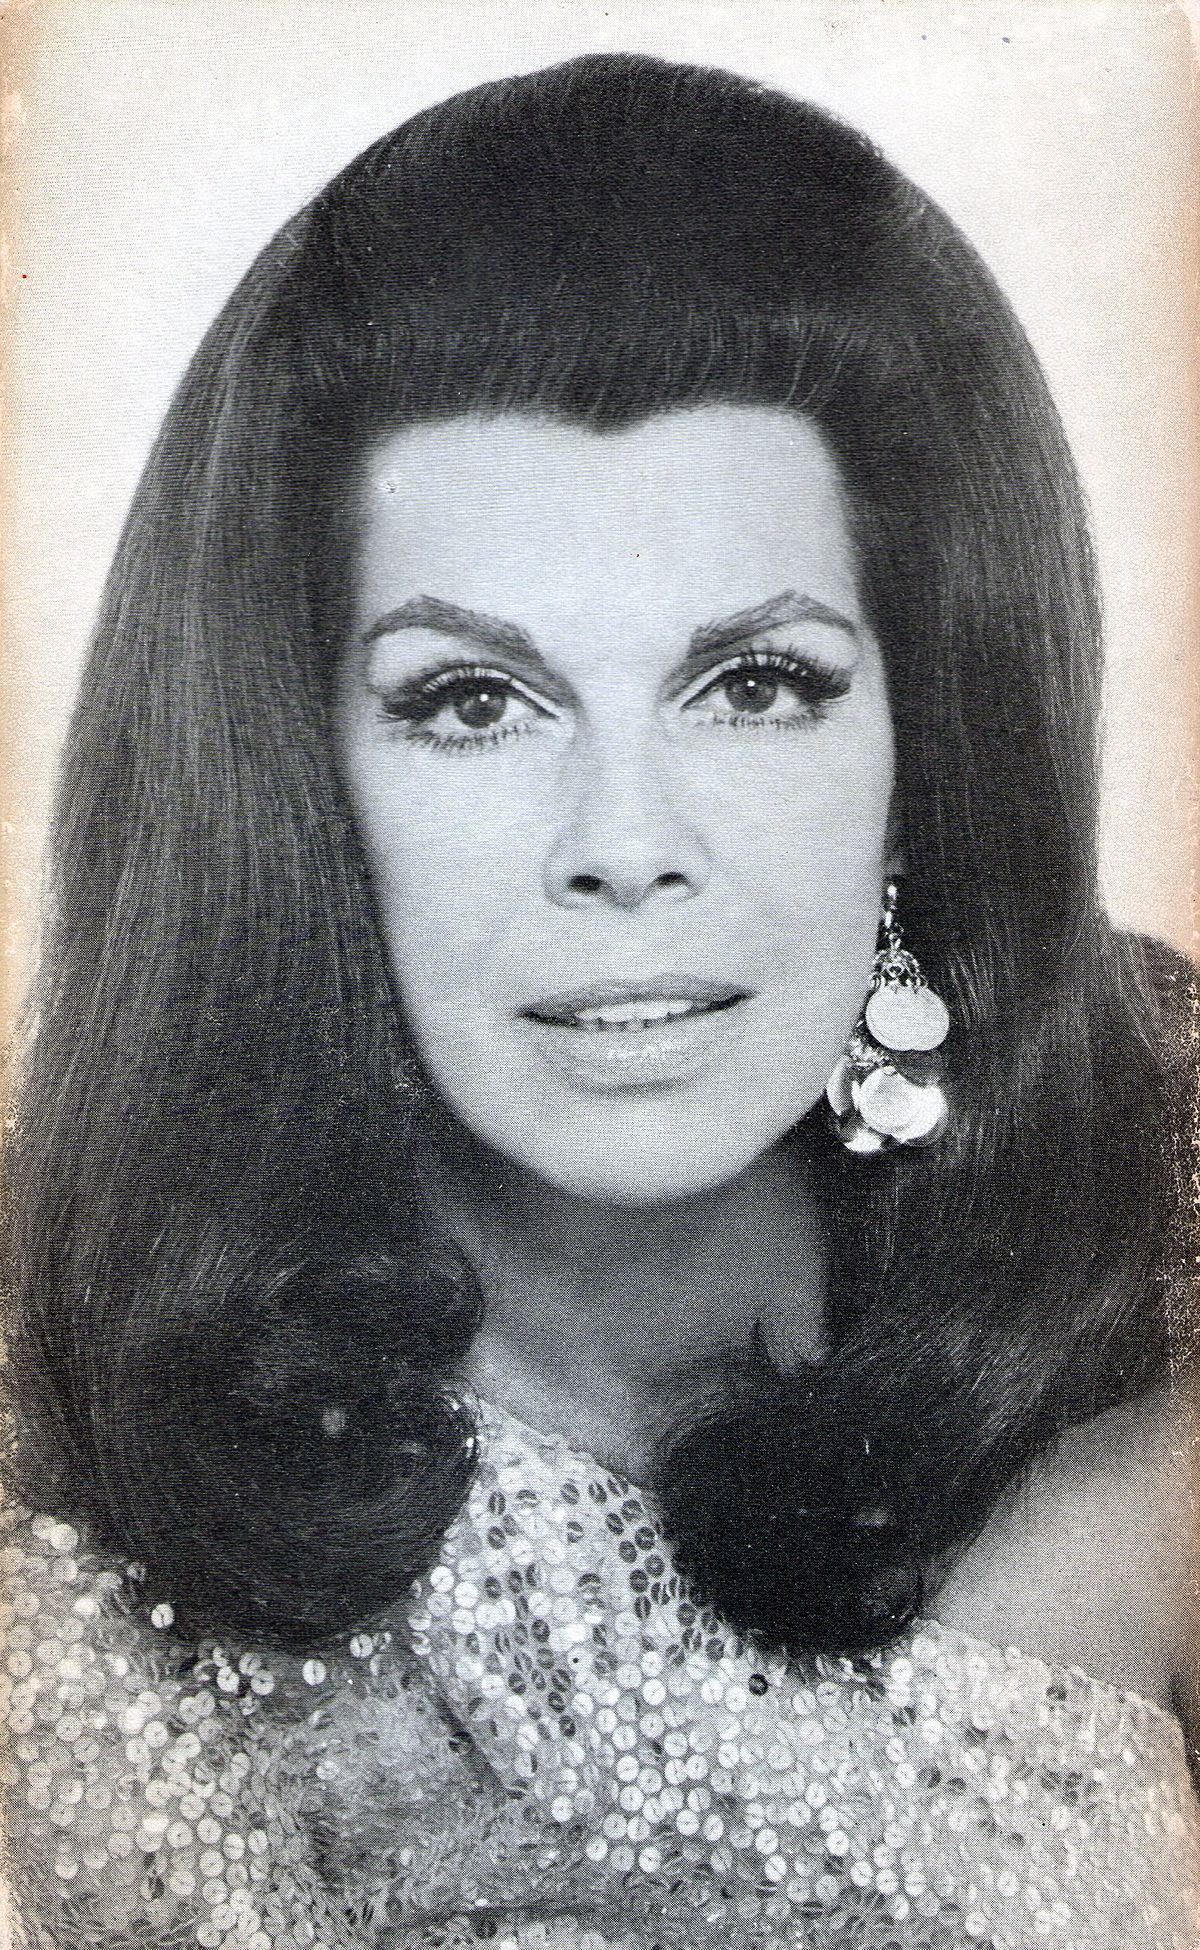 Jacqueline Susann nude (67 foto and video), Tits, Sideboobs, Instagram, butt 2018